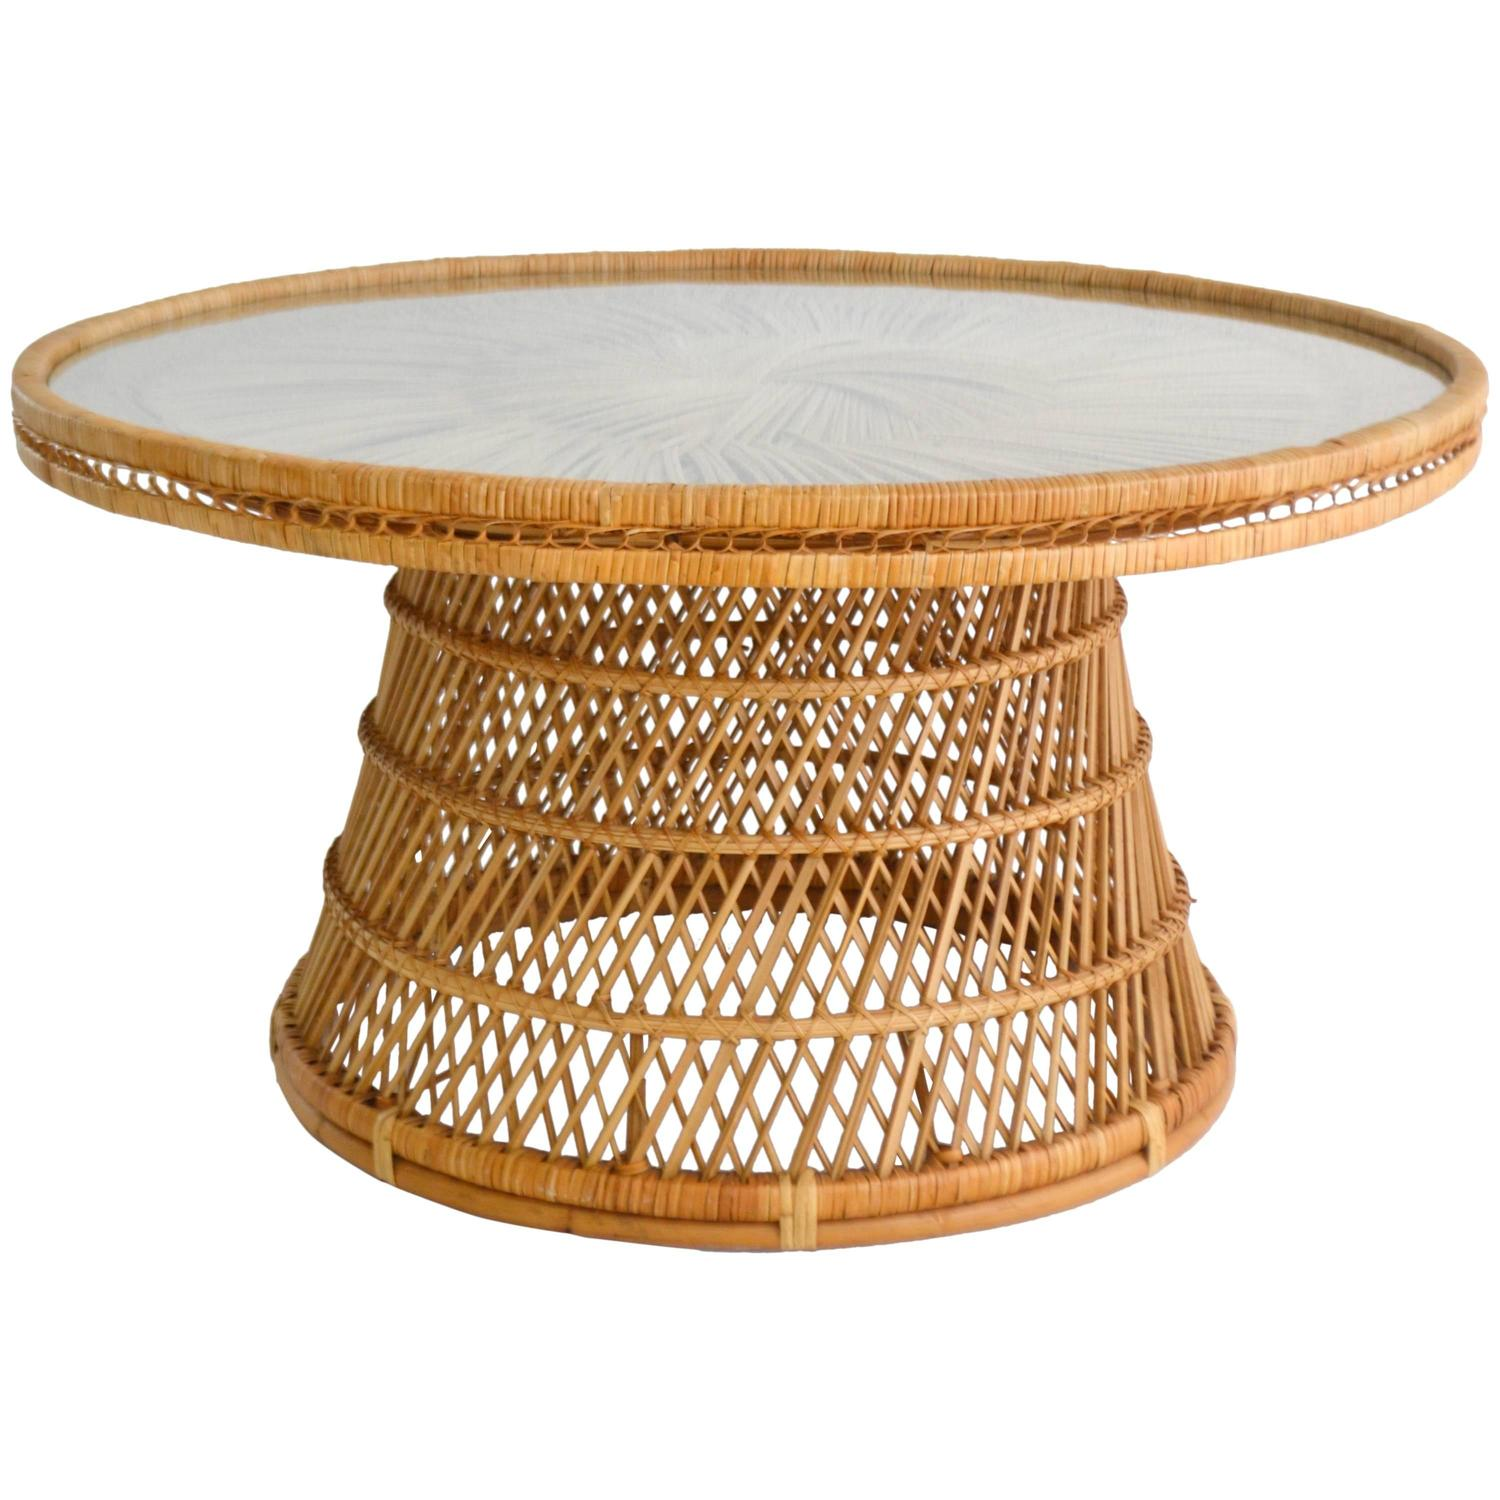 Mid Century Woven Rattan Coffee Table Cocktail Table For Sale at